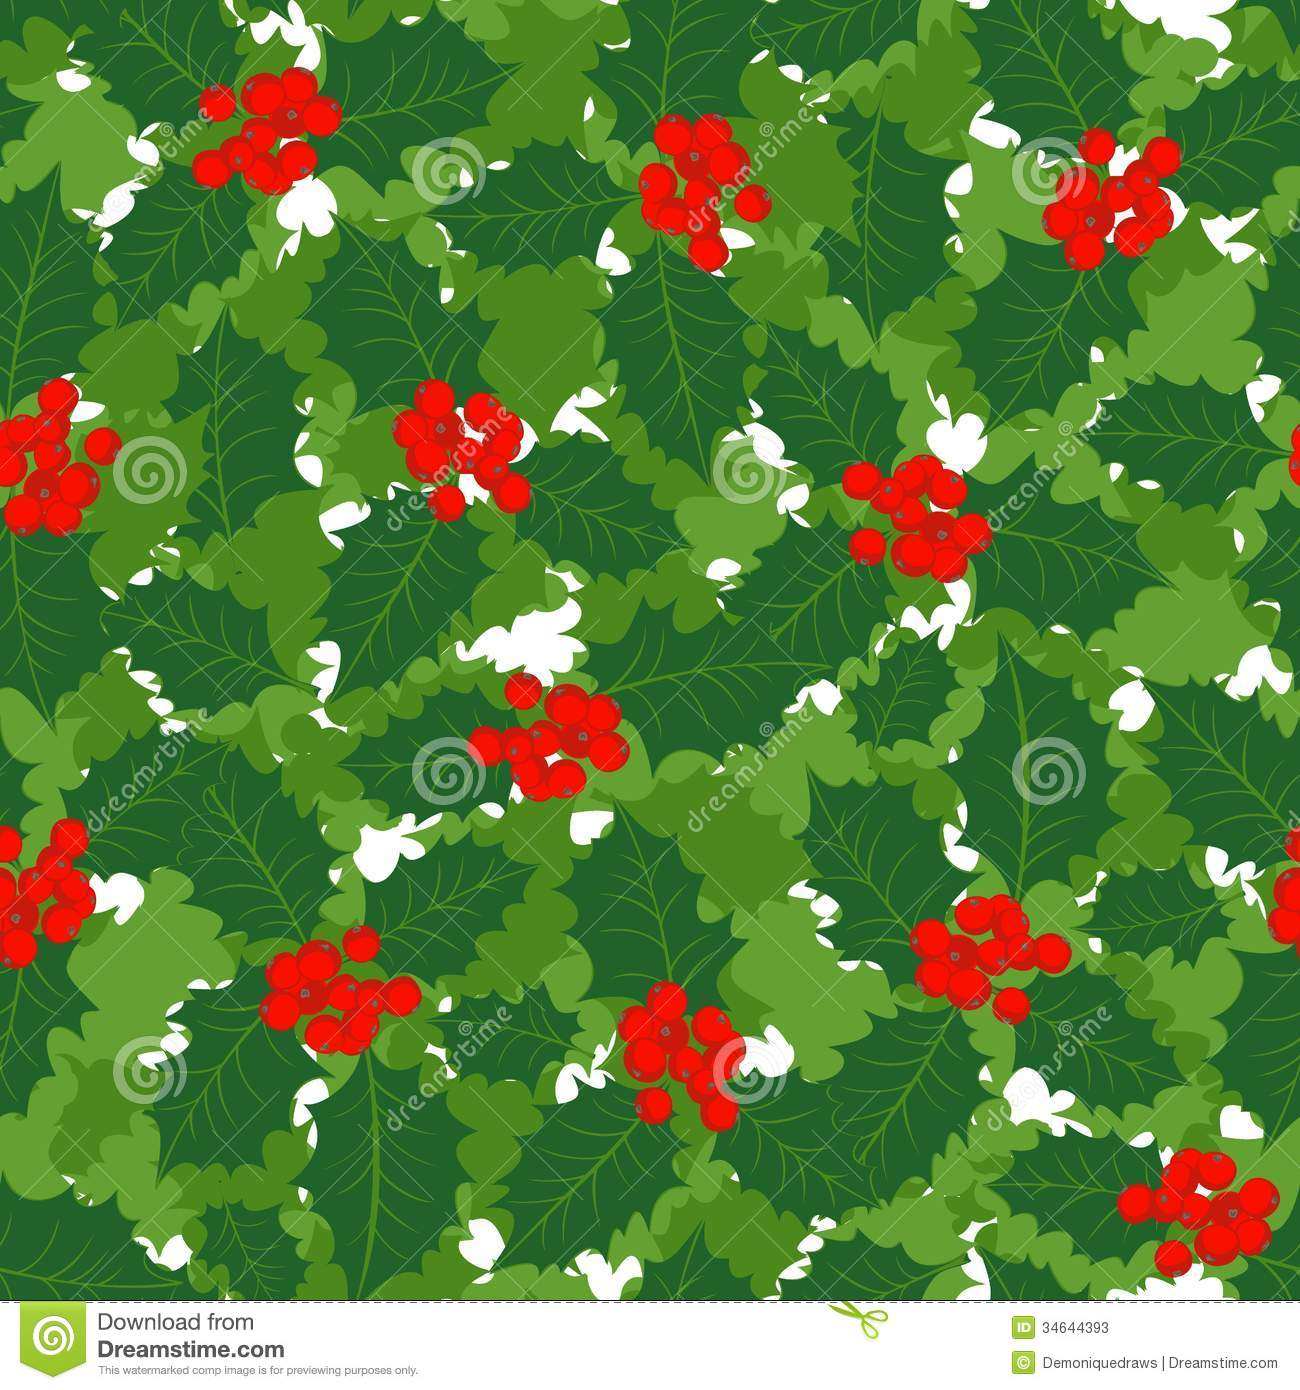 Holly Leaves And Berries Holiday Seamless Pattern Stock Photos ...